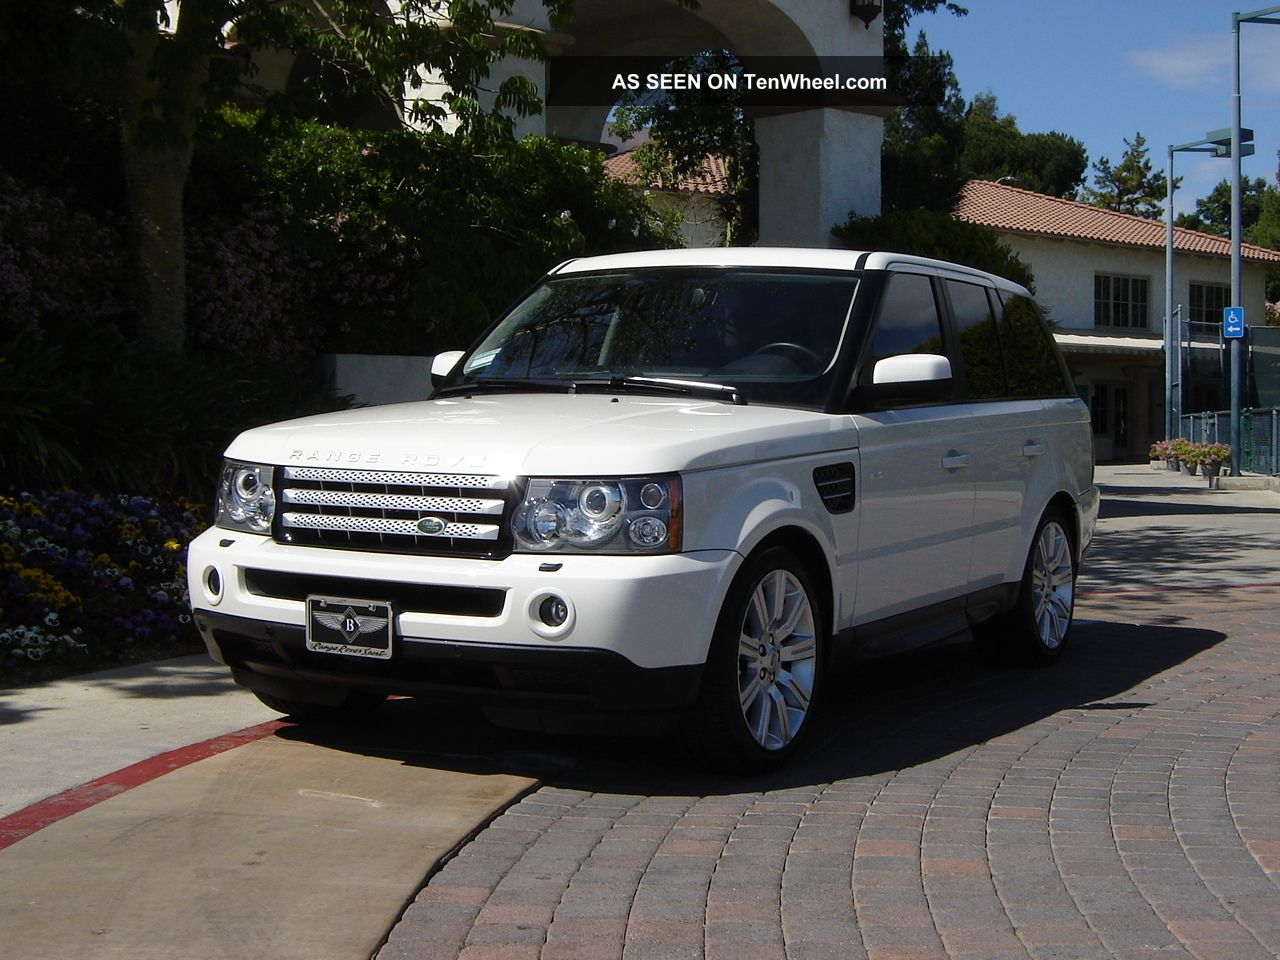 2009 range rover sport luxury ed white black 2011. Black Bedroom Furniture Sets. Home Design Ideas